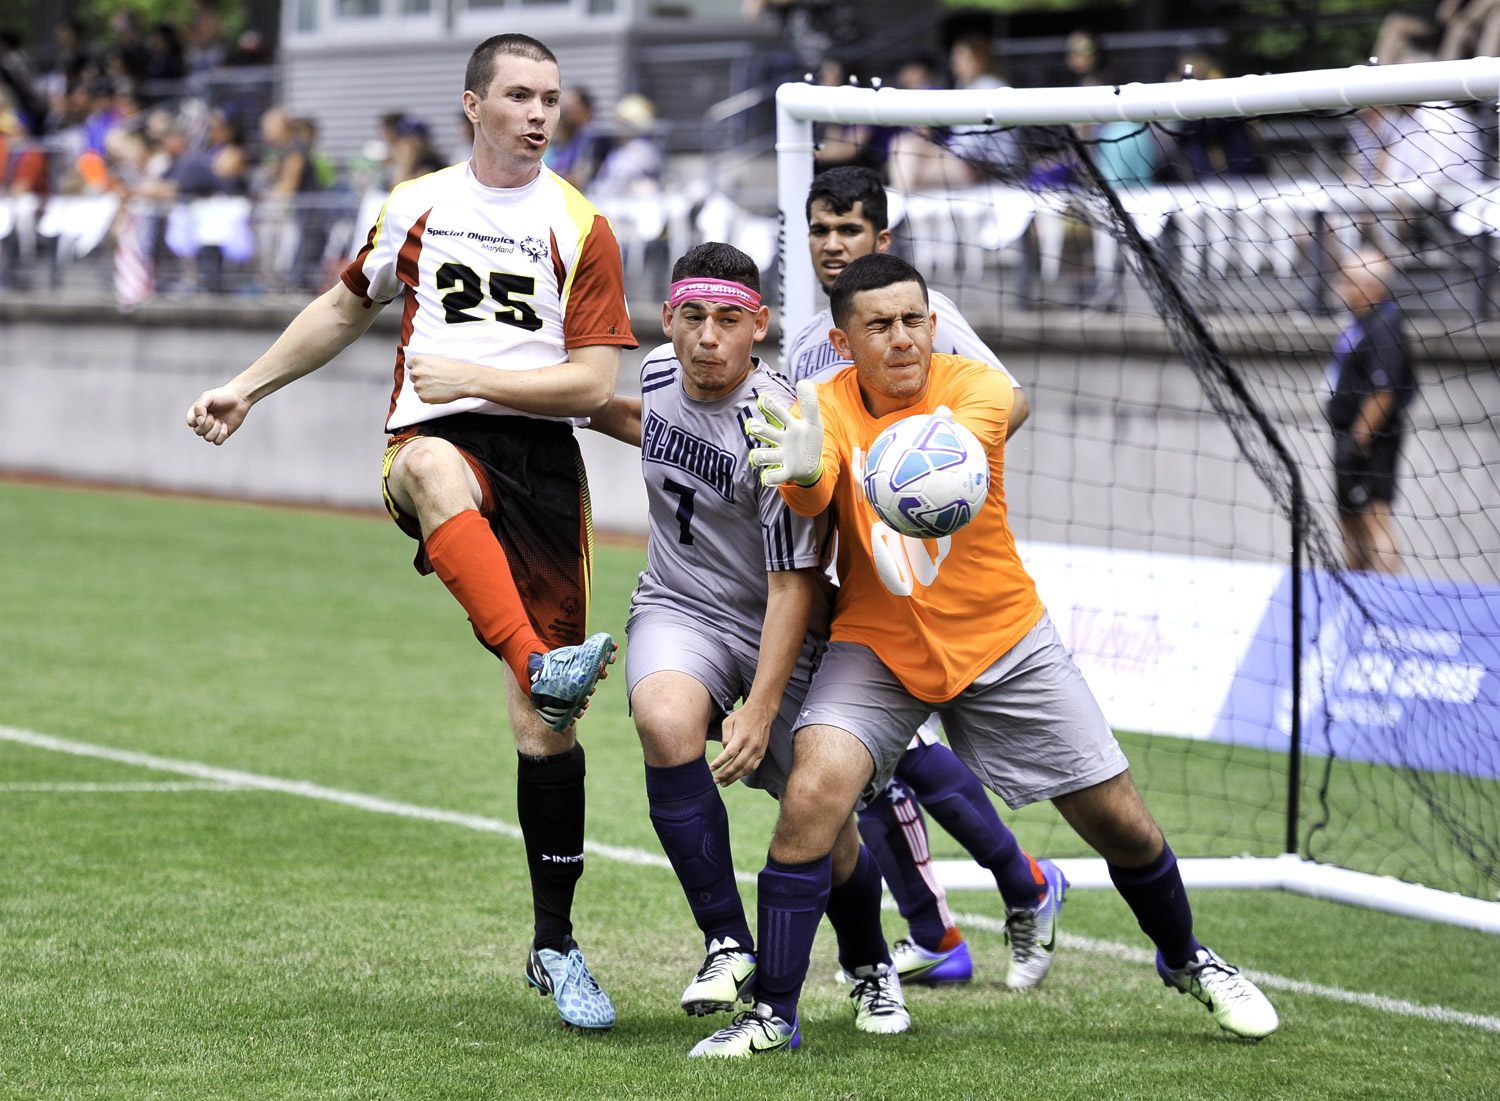 Team Maryland player attempts to score and Team Florida goalkeeper deflects the ball on the Championship Field of the University of Seattle.